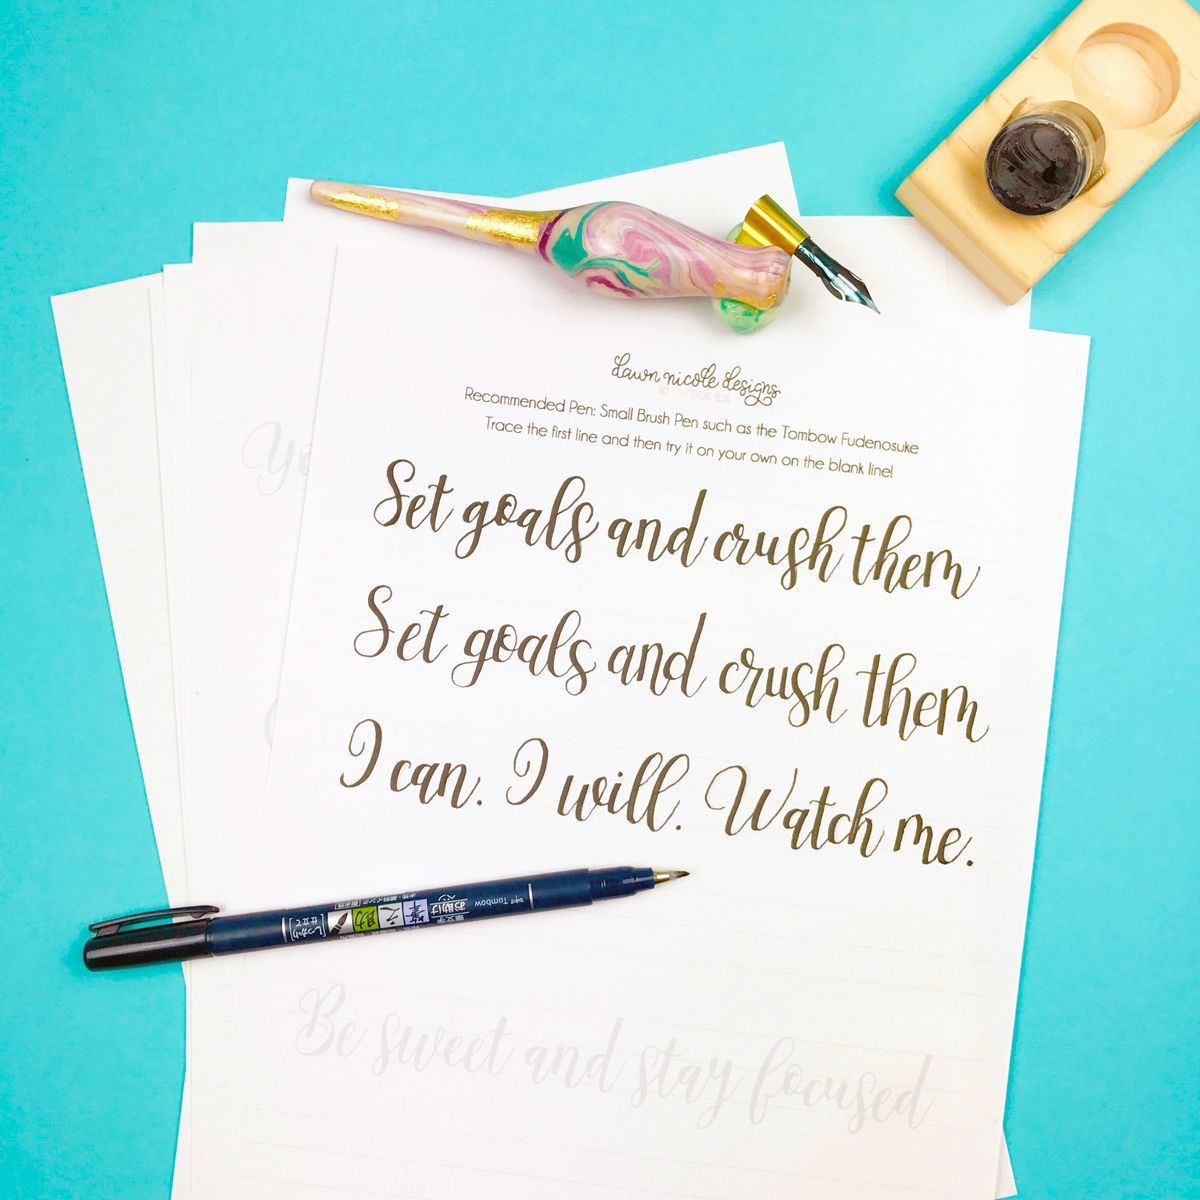 Motivational Free Calligraphy Practice Sheets | DIY